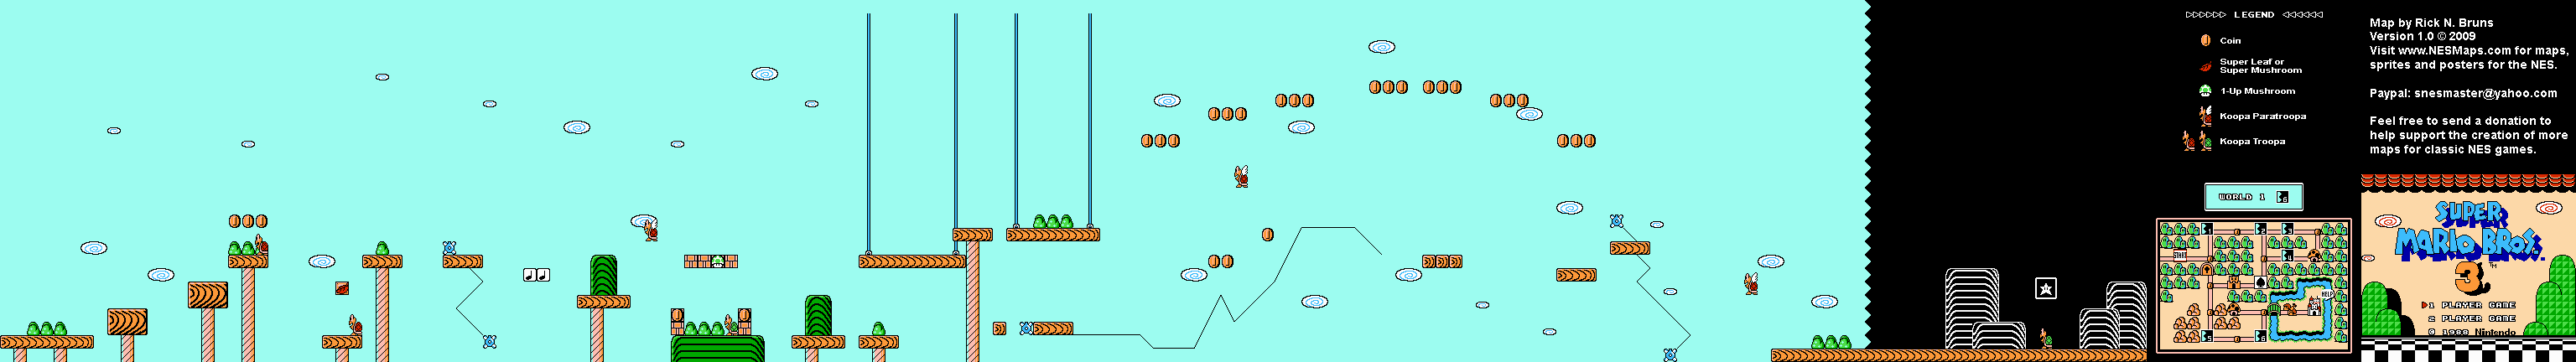 map of the world labeled with Supermariobros3map1 6 on hill Bagging co additionally China Quiz together with File Israeli and Palestinian Flags in addition 8601694346 further Shulhanuyotmap.